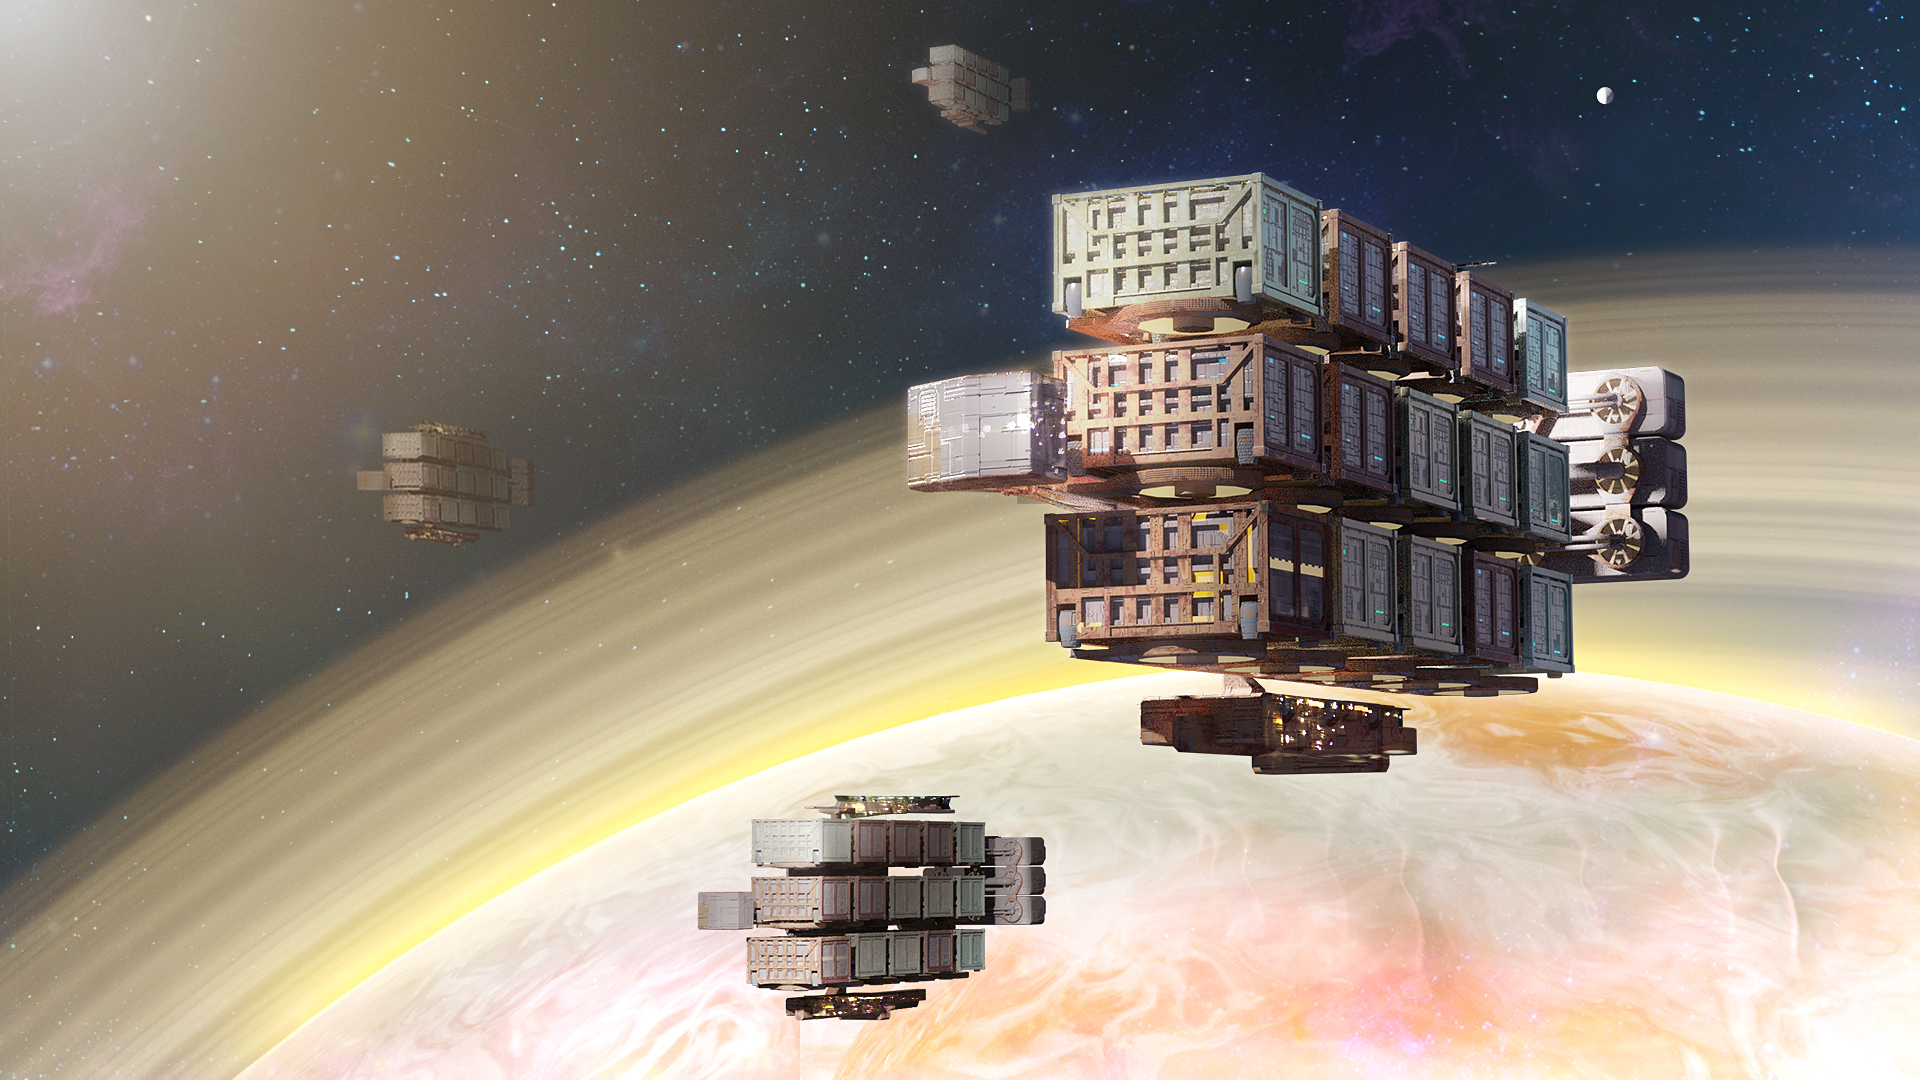 Watch a live demo of upcoming space 4X game Distant Worlds 2 in action